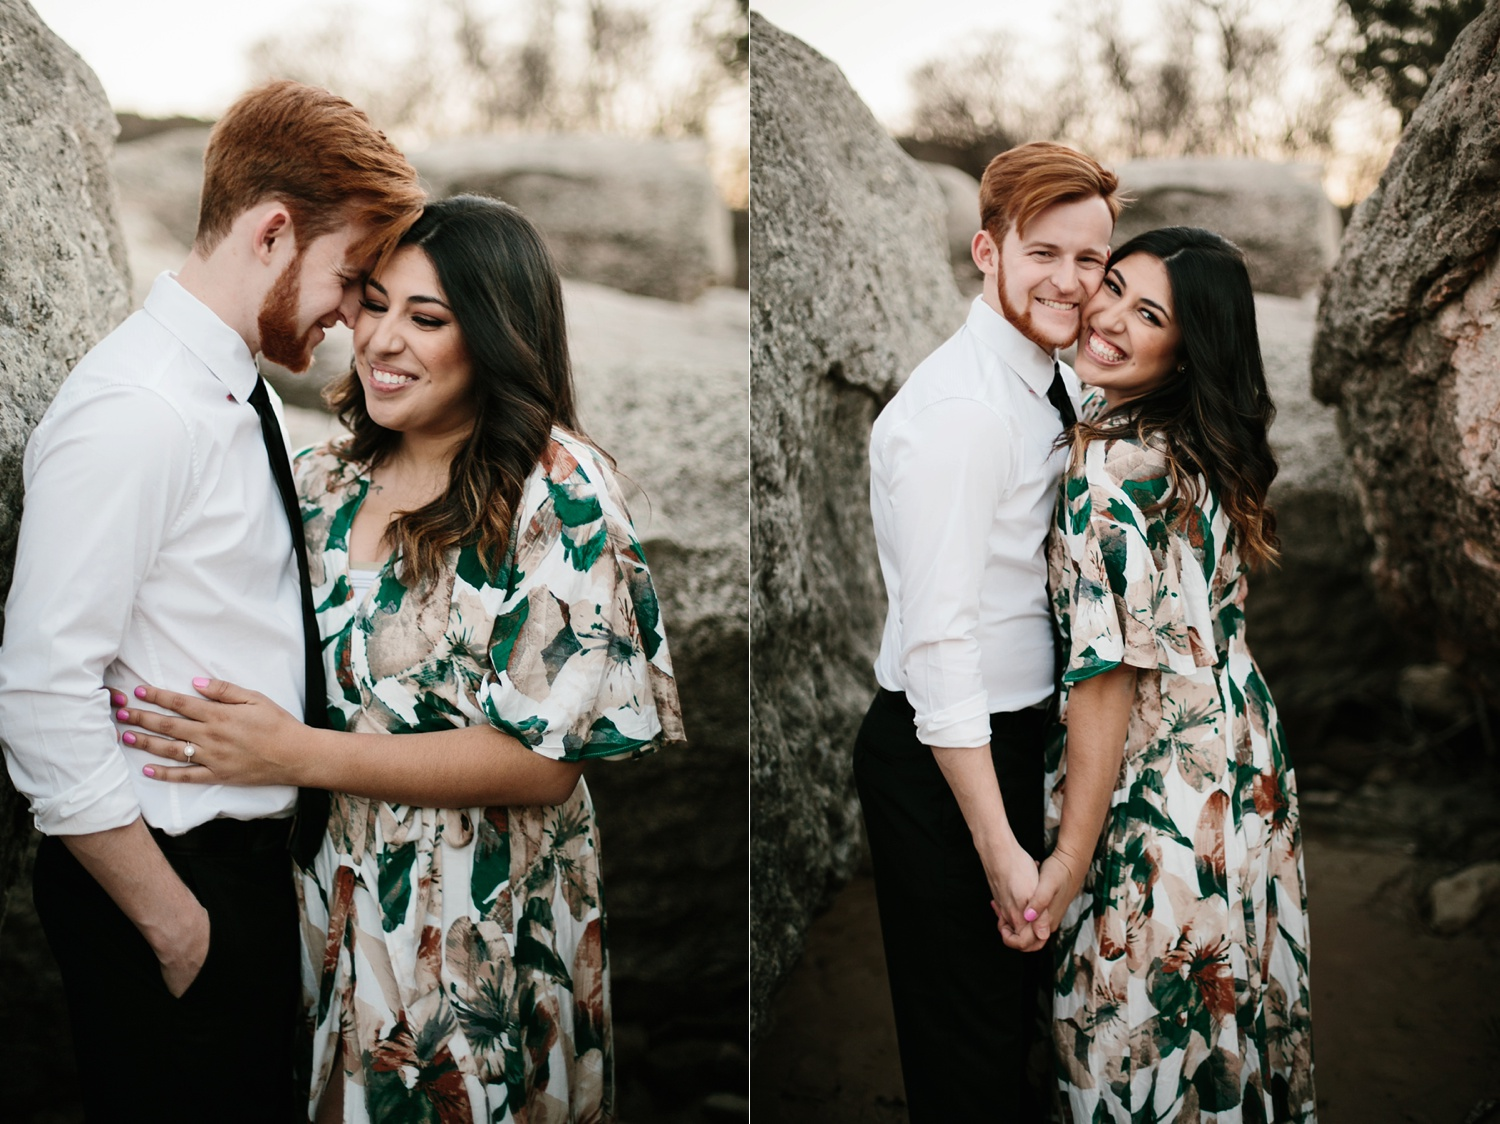 Grant + Lysette - floral dress engagement session by North Texas Wedding Photographer Rachel Meagan Photography097